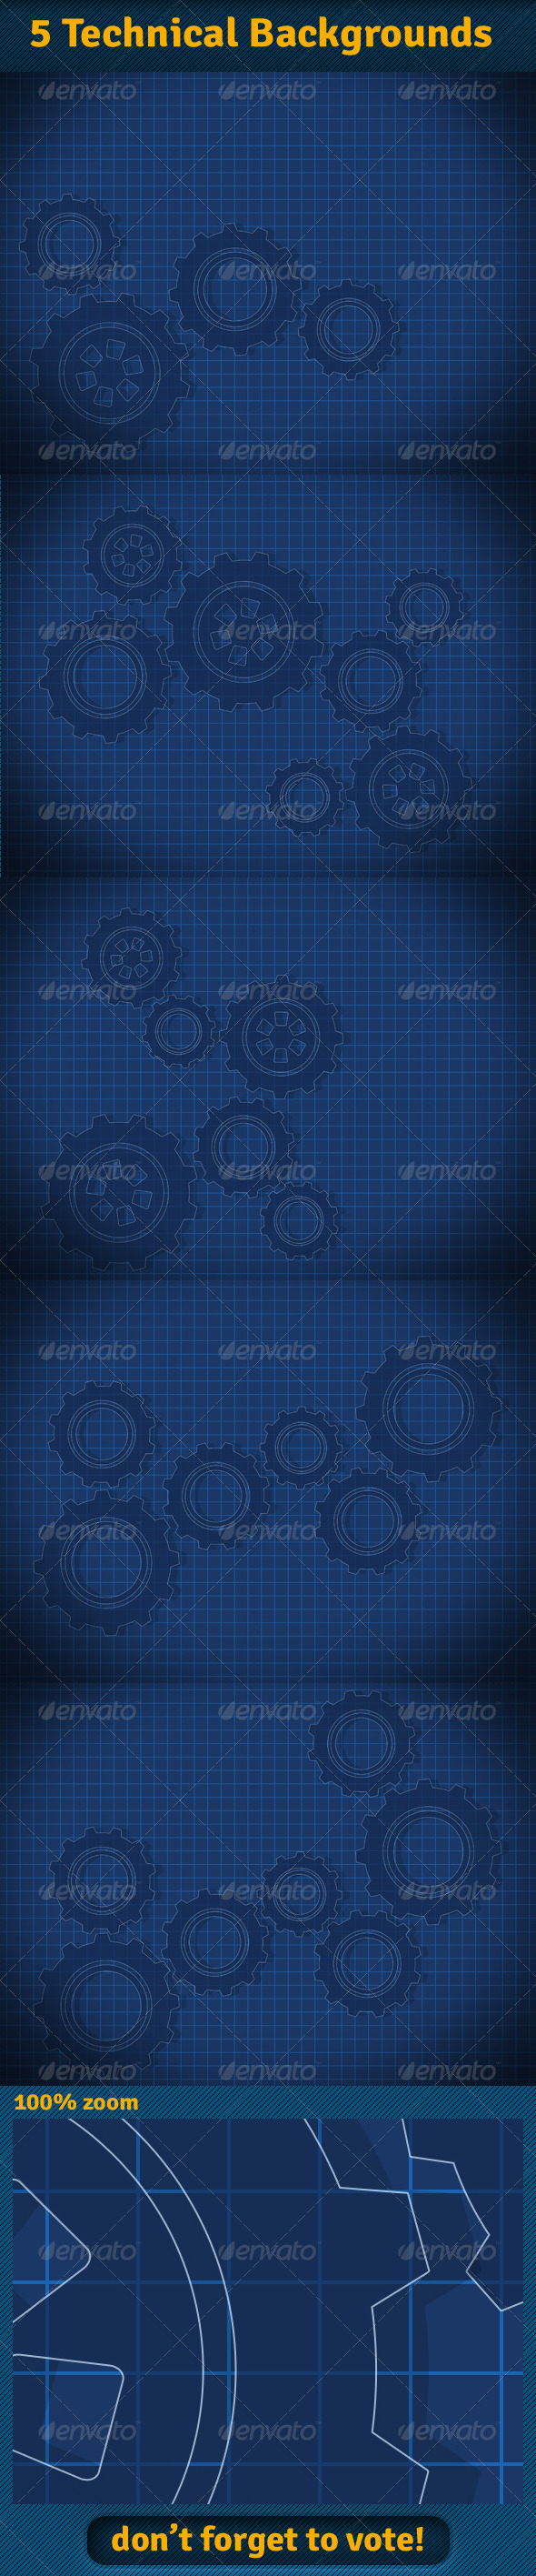 GraphicRiver Technical Backgrounds 6037807